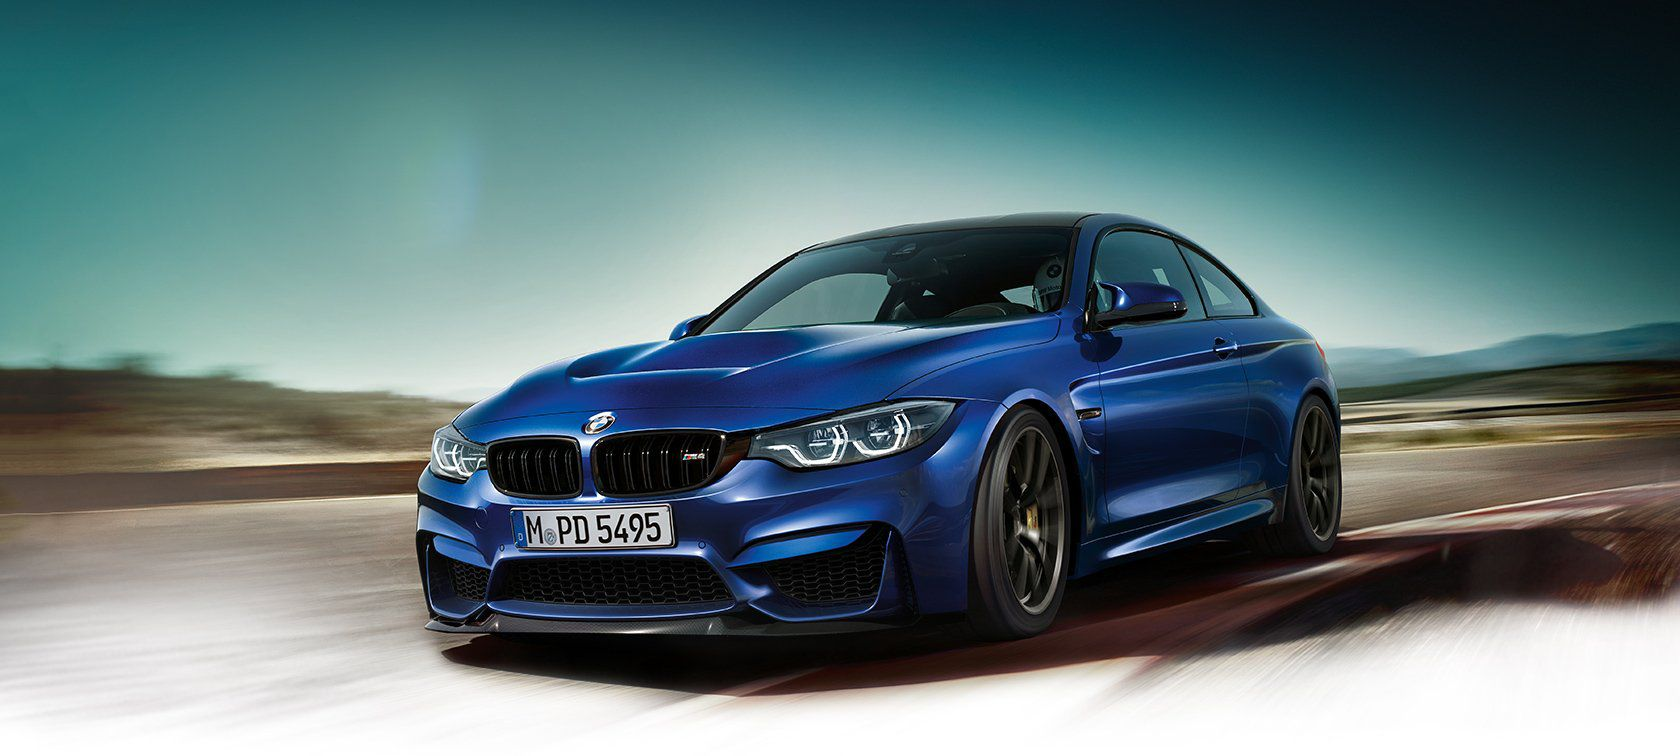 003 BMW M4 coupe